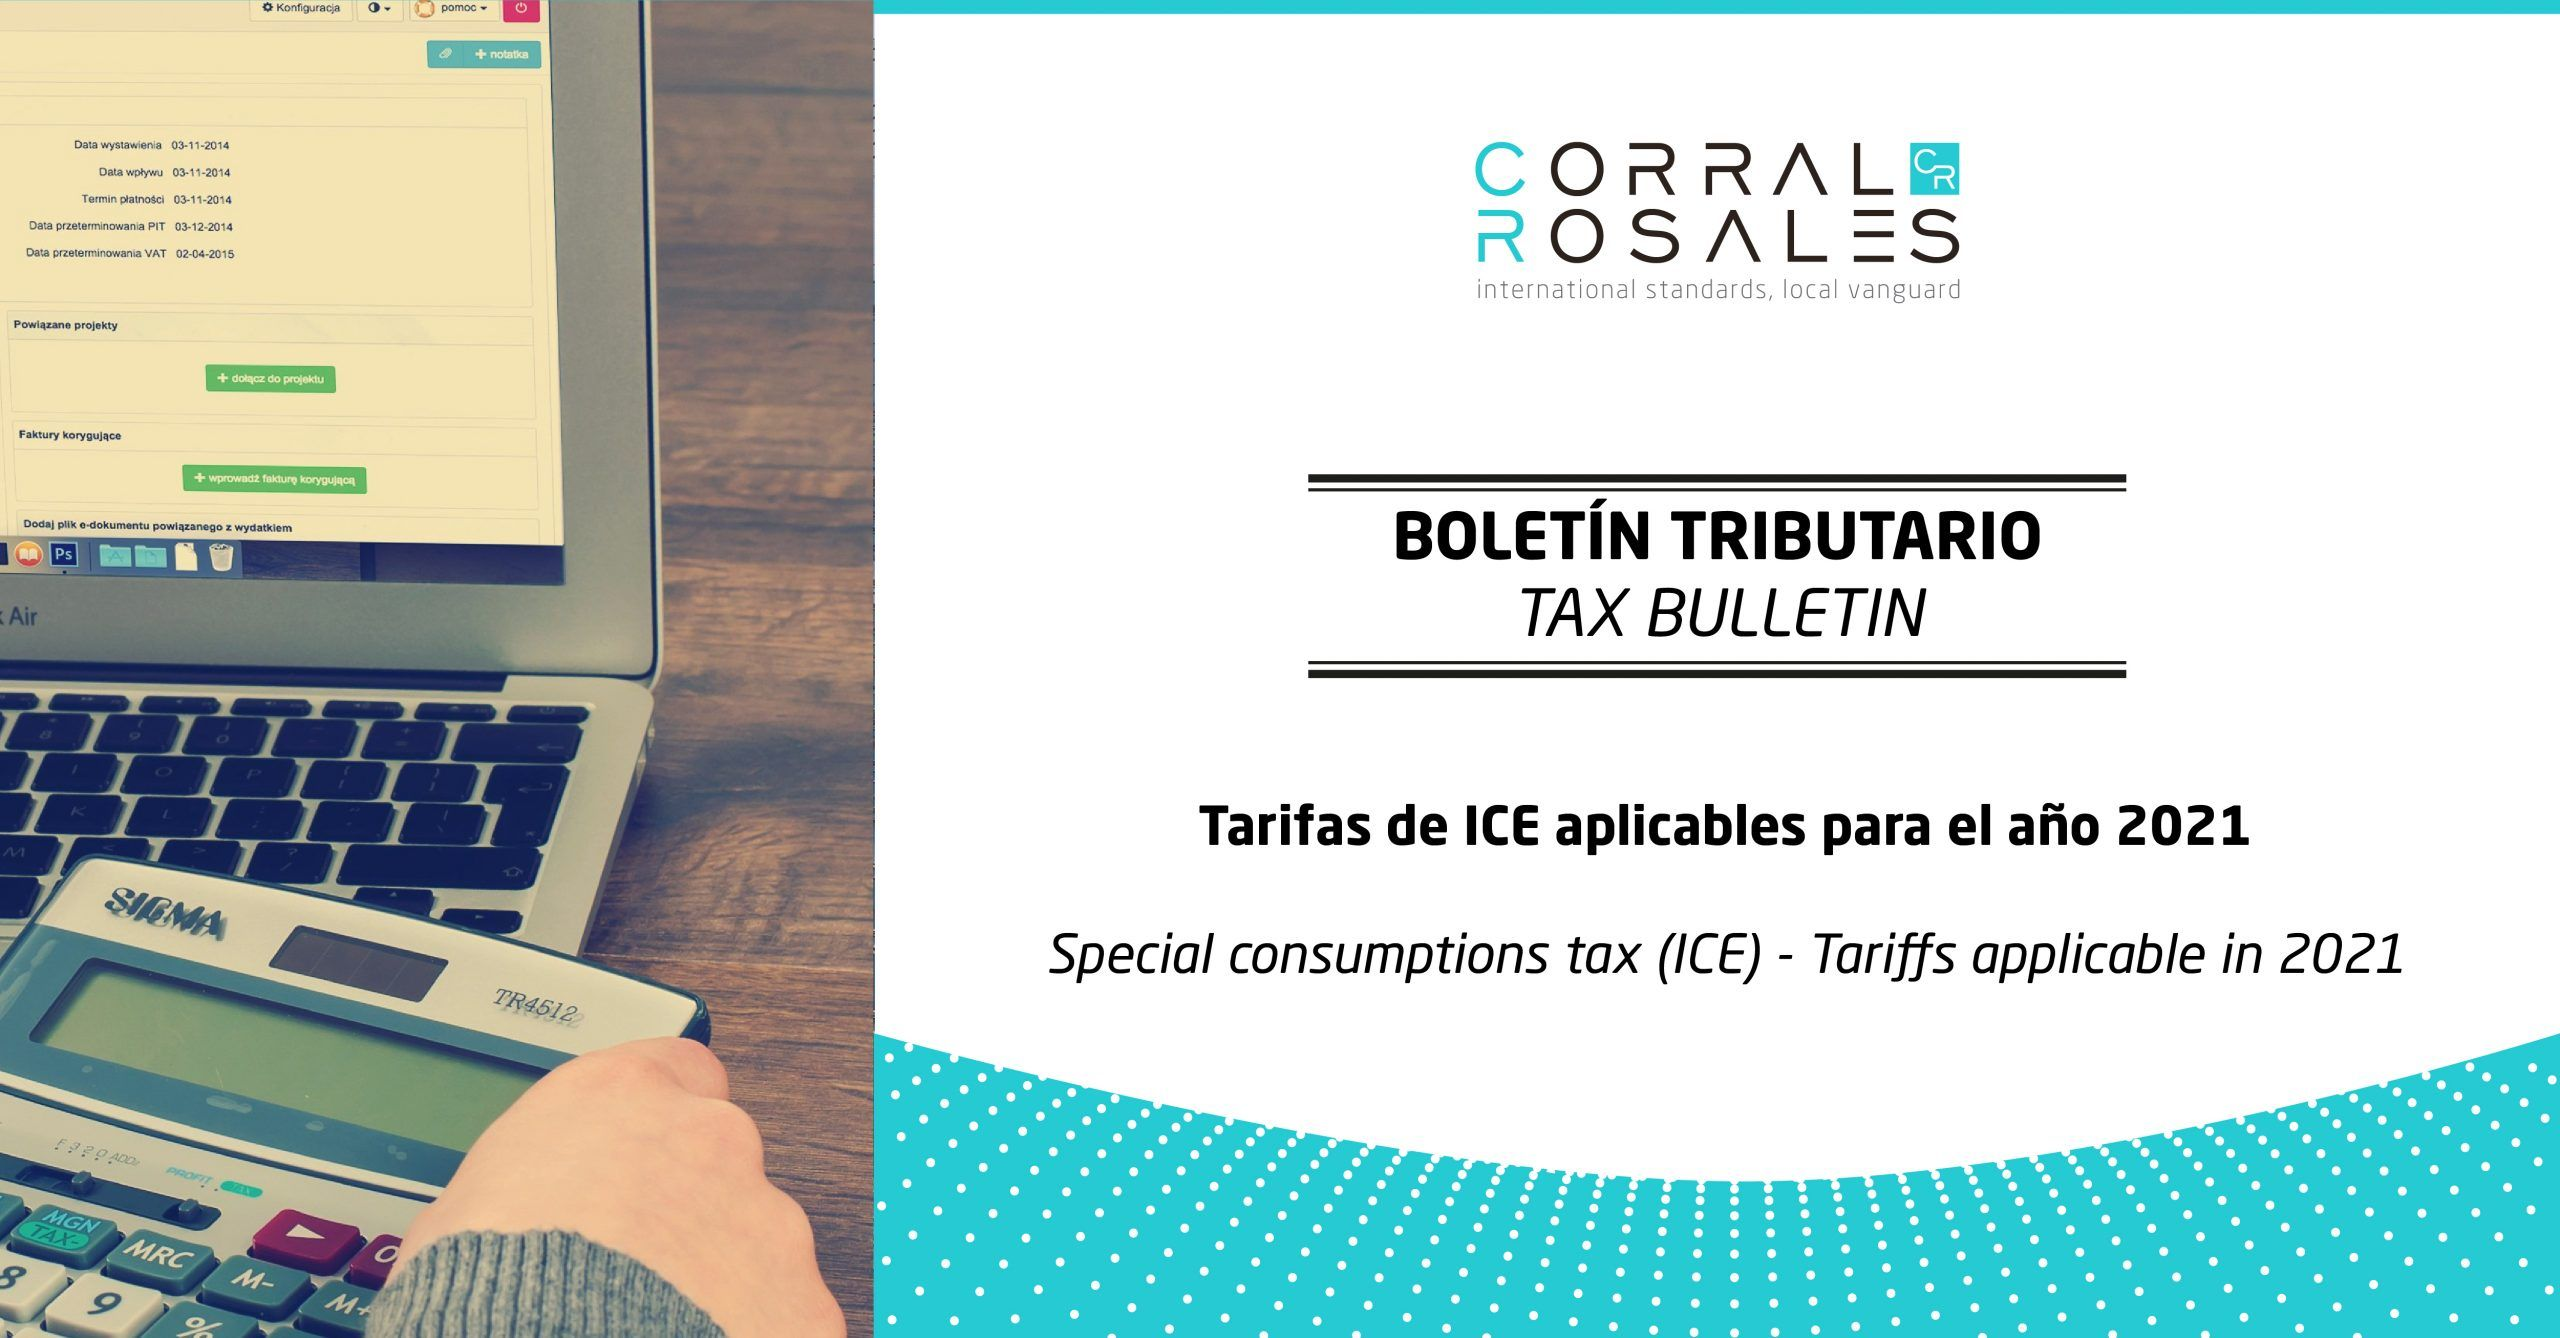 special-consumptions-tax-ice-tariffs-applicable-in-2021-lawyers-ecuador